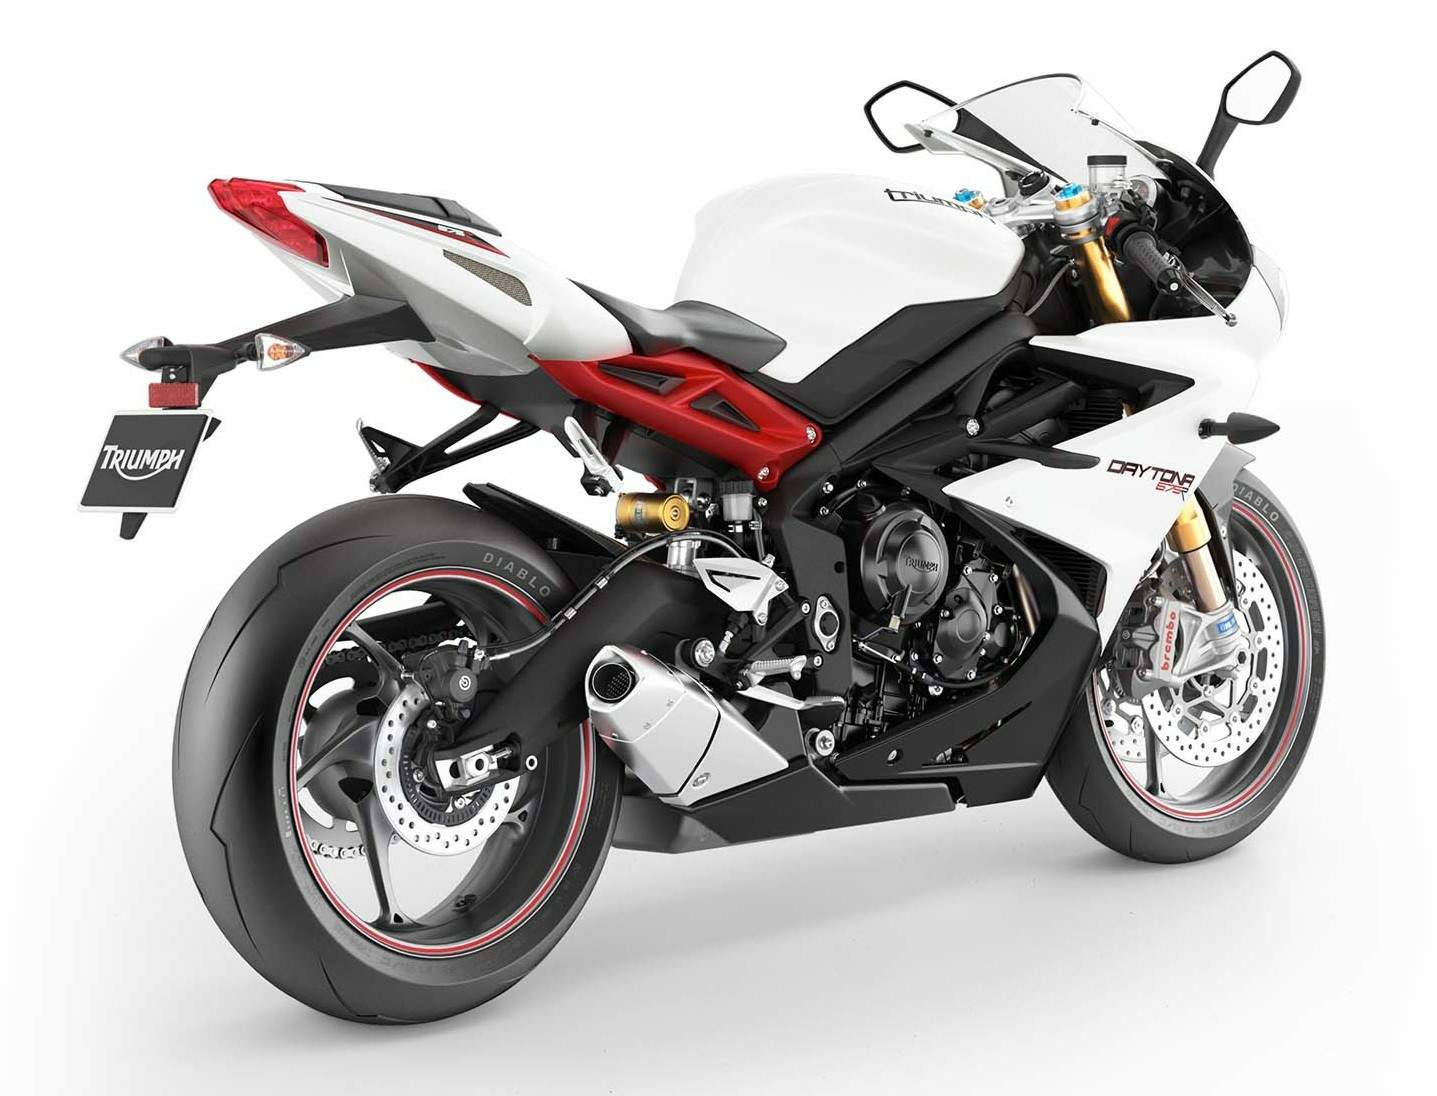 triumph daytona 675r specs 2013 2014 autoevolution. Black Bedroom Furniture Sets. Home Design Ideas